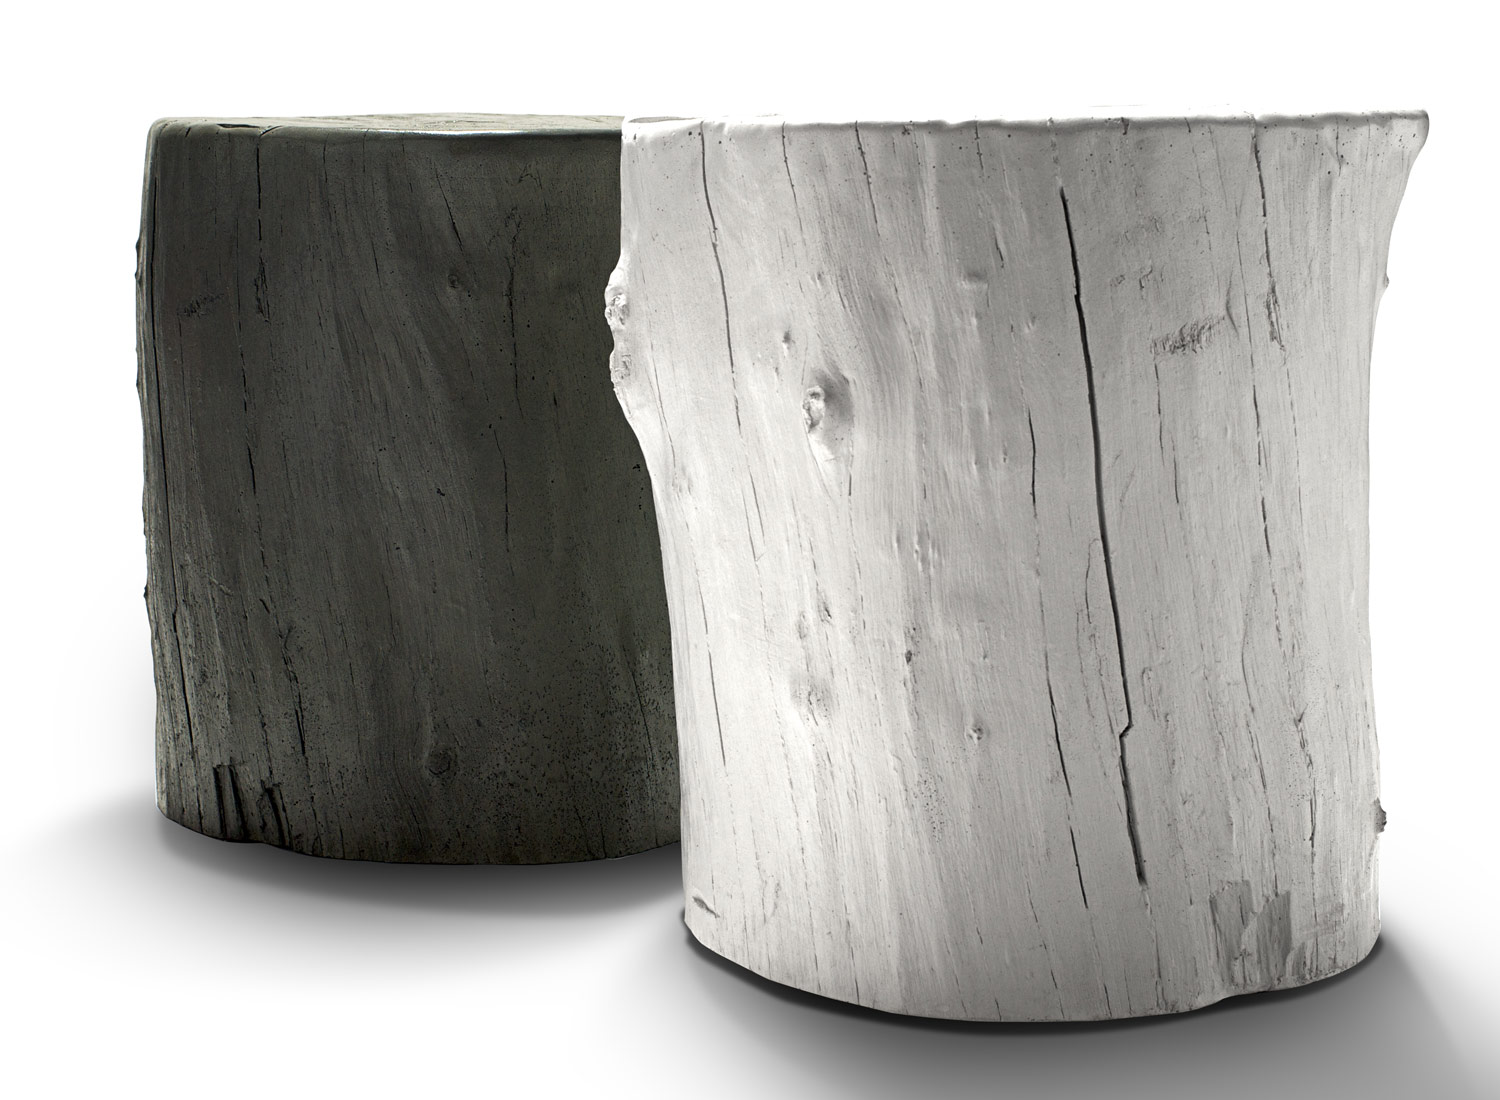 Hard Goods Concrete Knotty Stool, a Concrete Tree Stump Stool that'll Last Forever